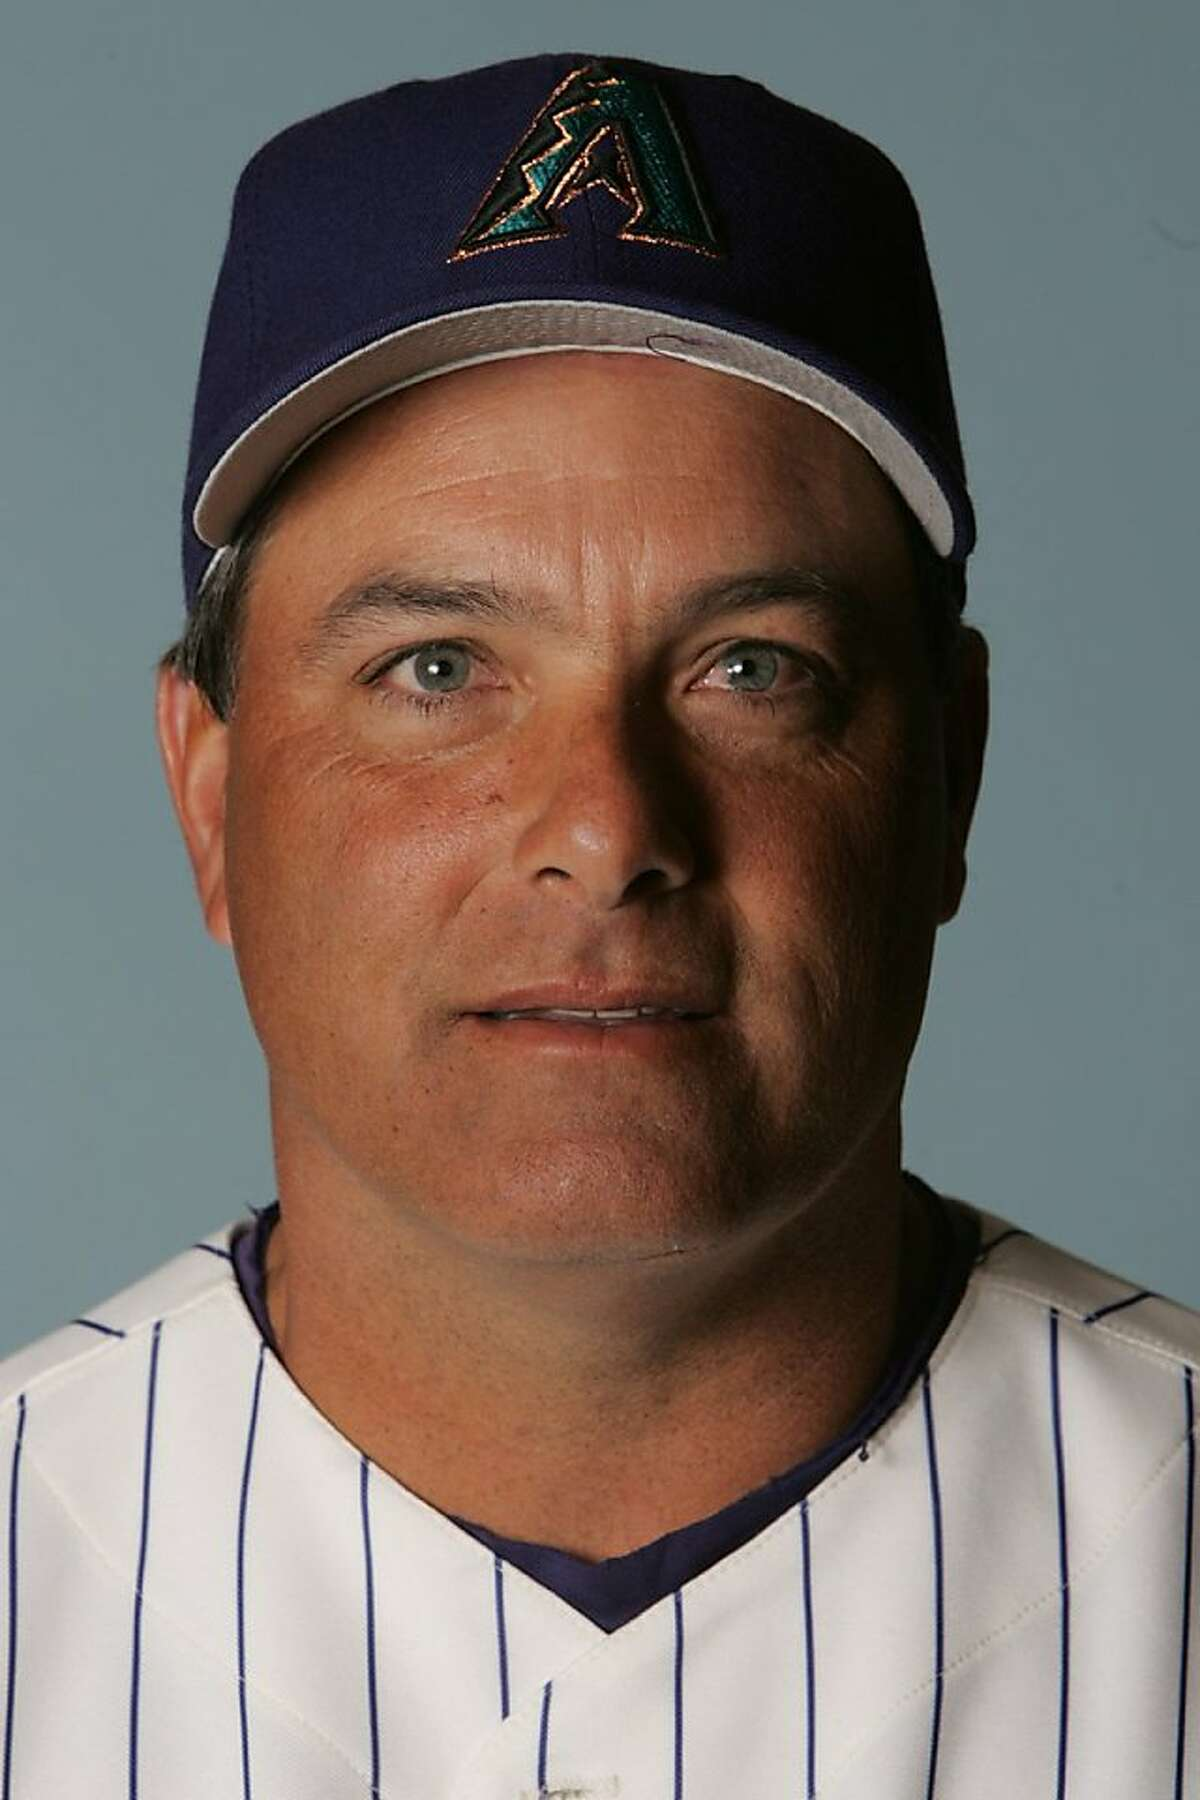 This is a 2006 file photo of Mike Aldrete of the Arizona Diamondbacks baseball team. (AP Photo/Charles Rex Arbogast)